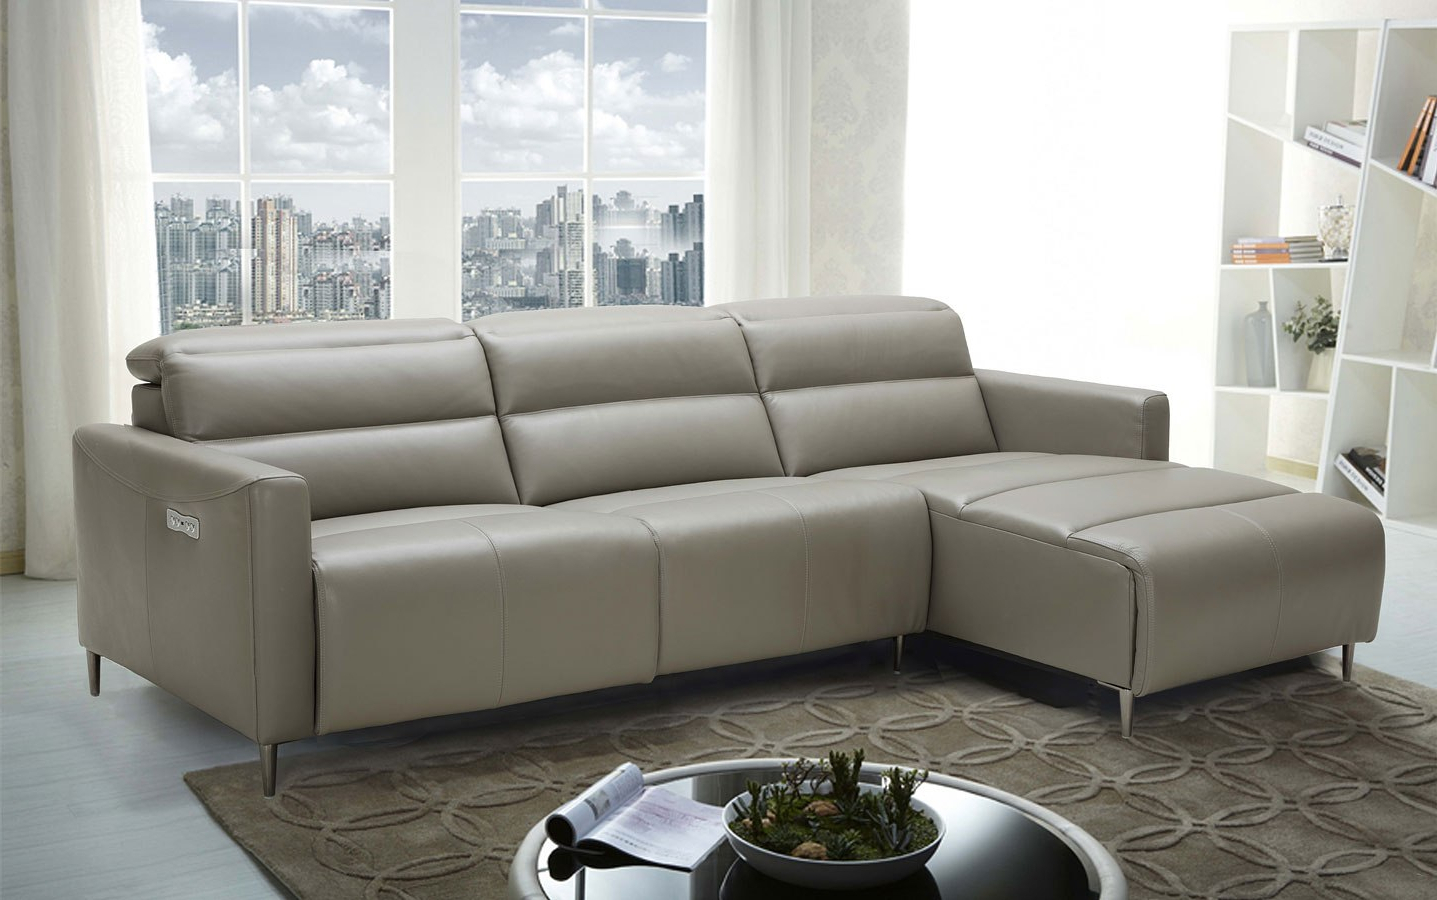 Palisades Reclining Sectional Sofas With Left Storage Chaise Regarding Famous Dylan Left Chaise Sectional Jm Furniture (View 11 of 20)